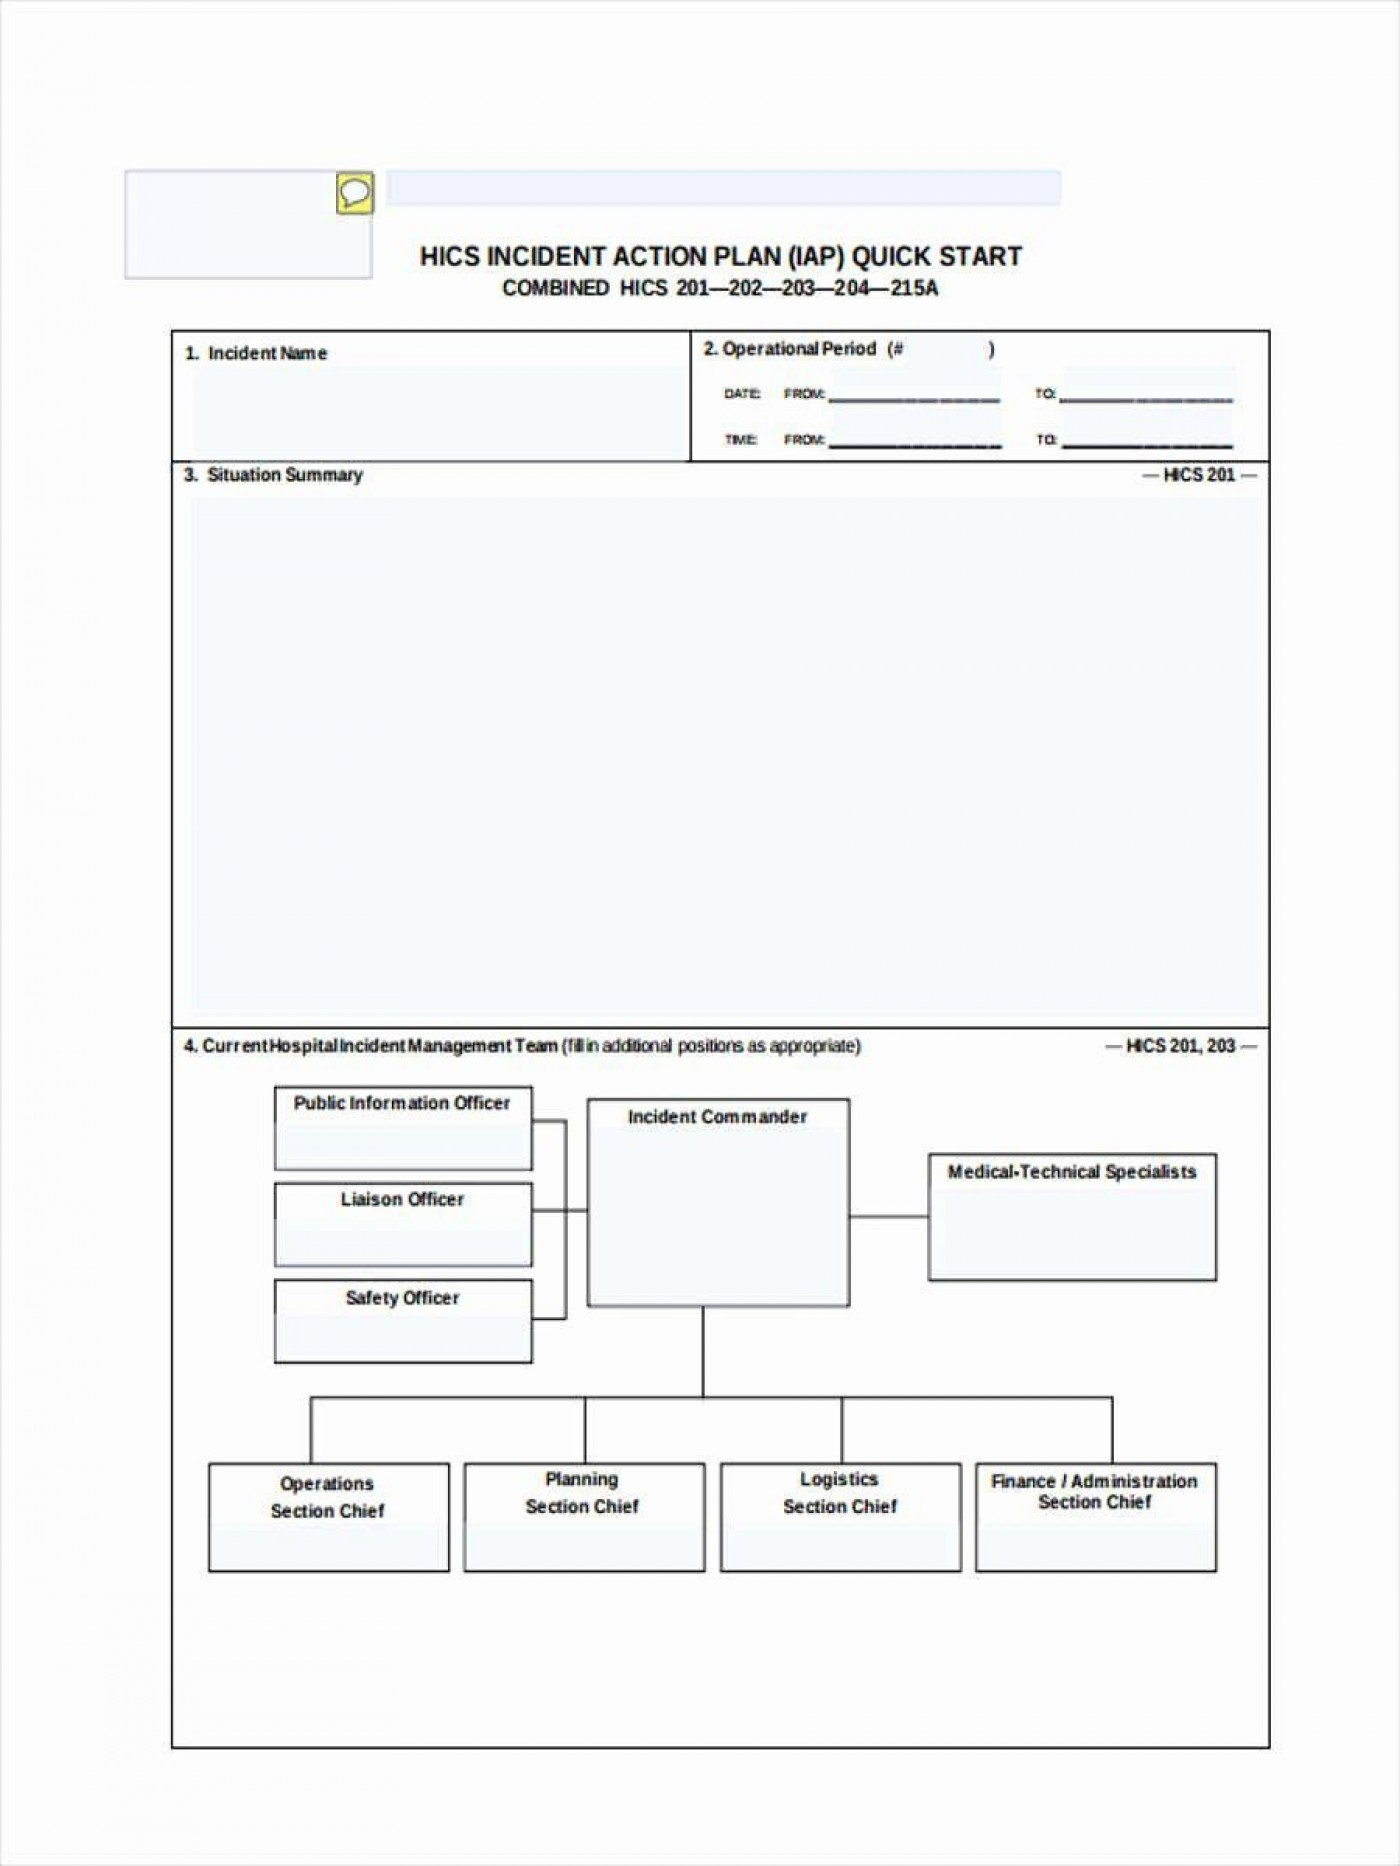 000 Shocking Incident Action Plan Template High Definition  Fire Example Format Form 2011400